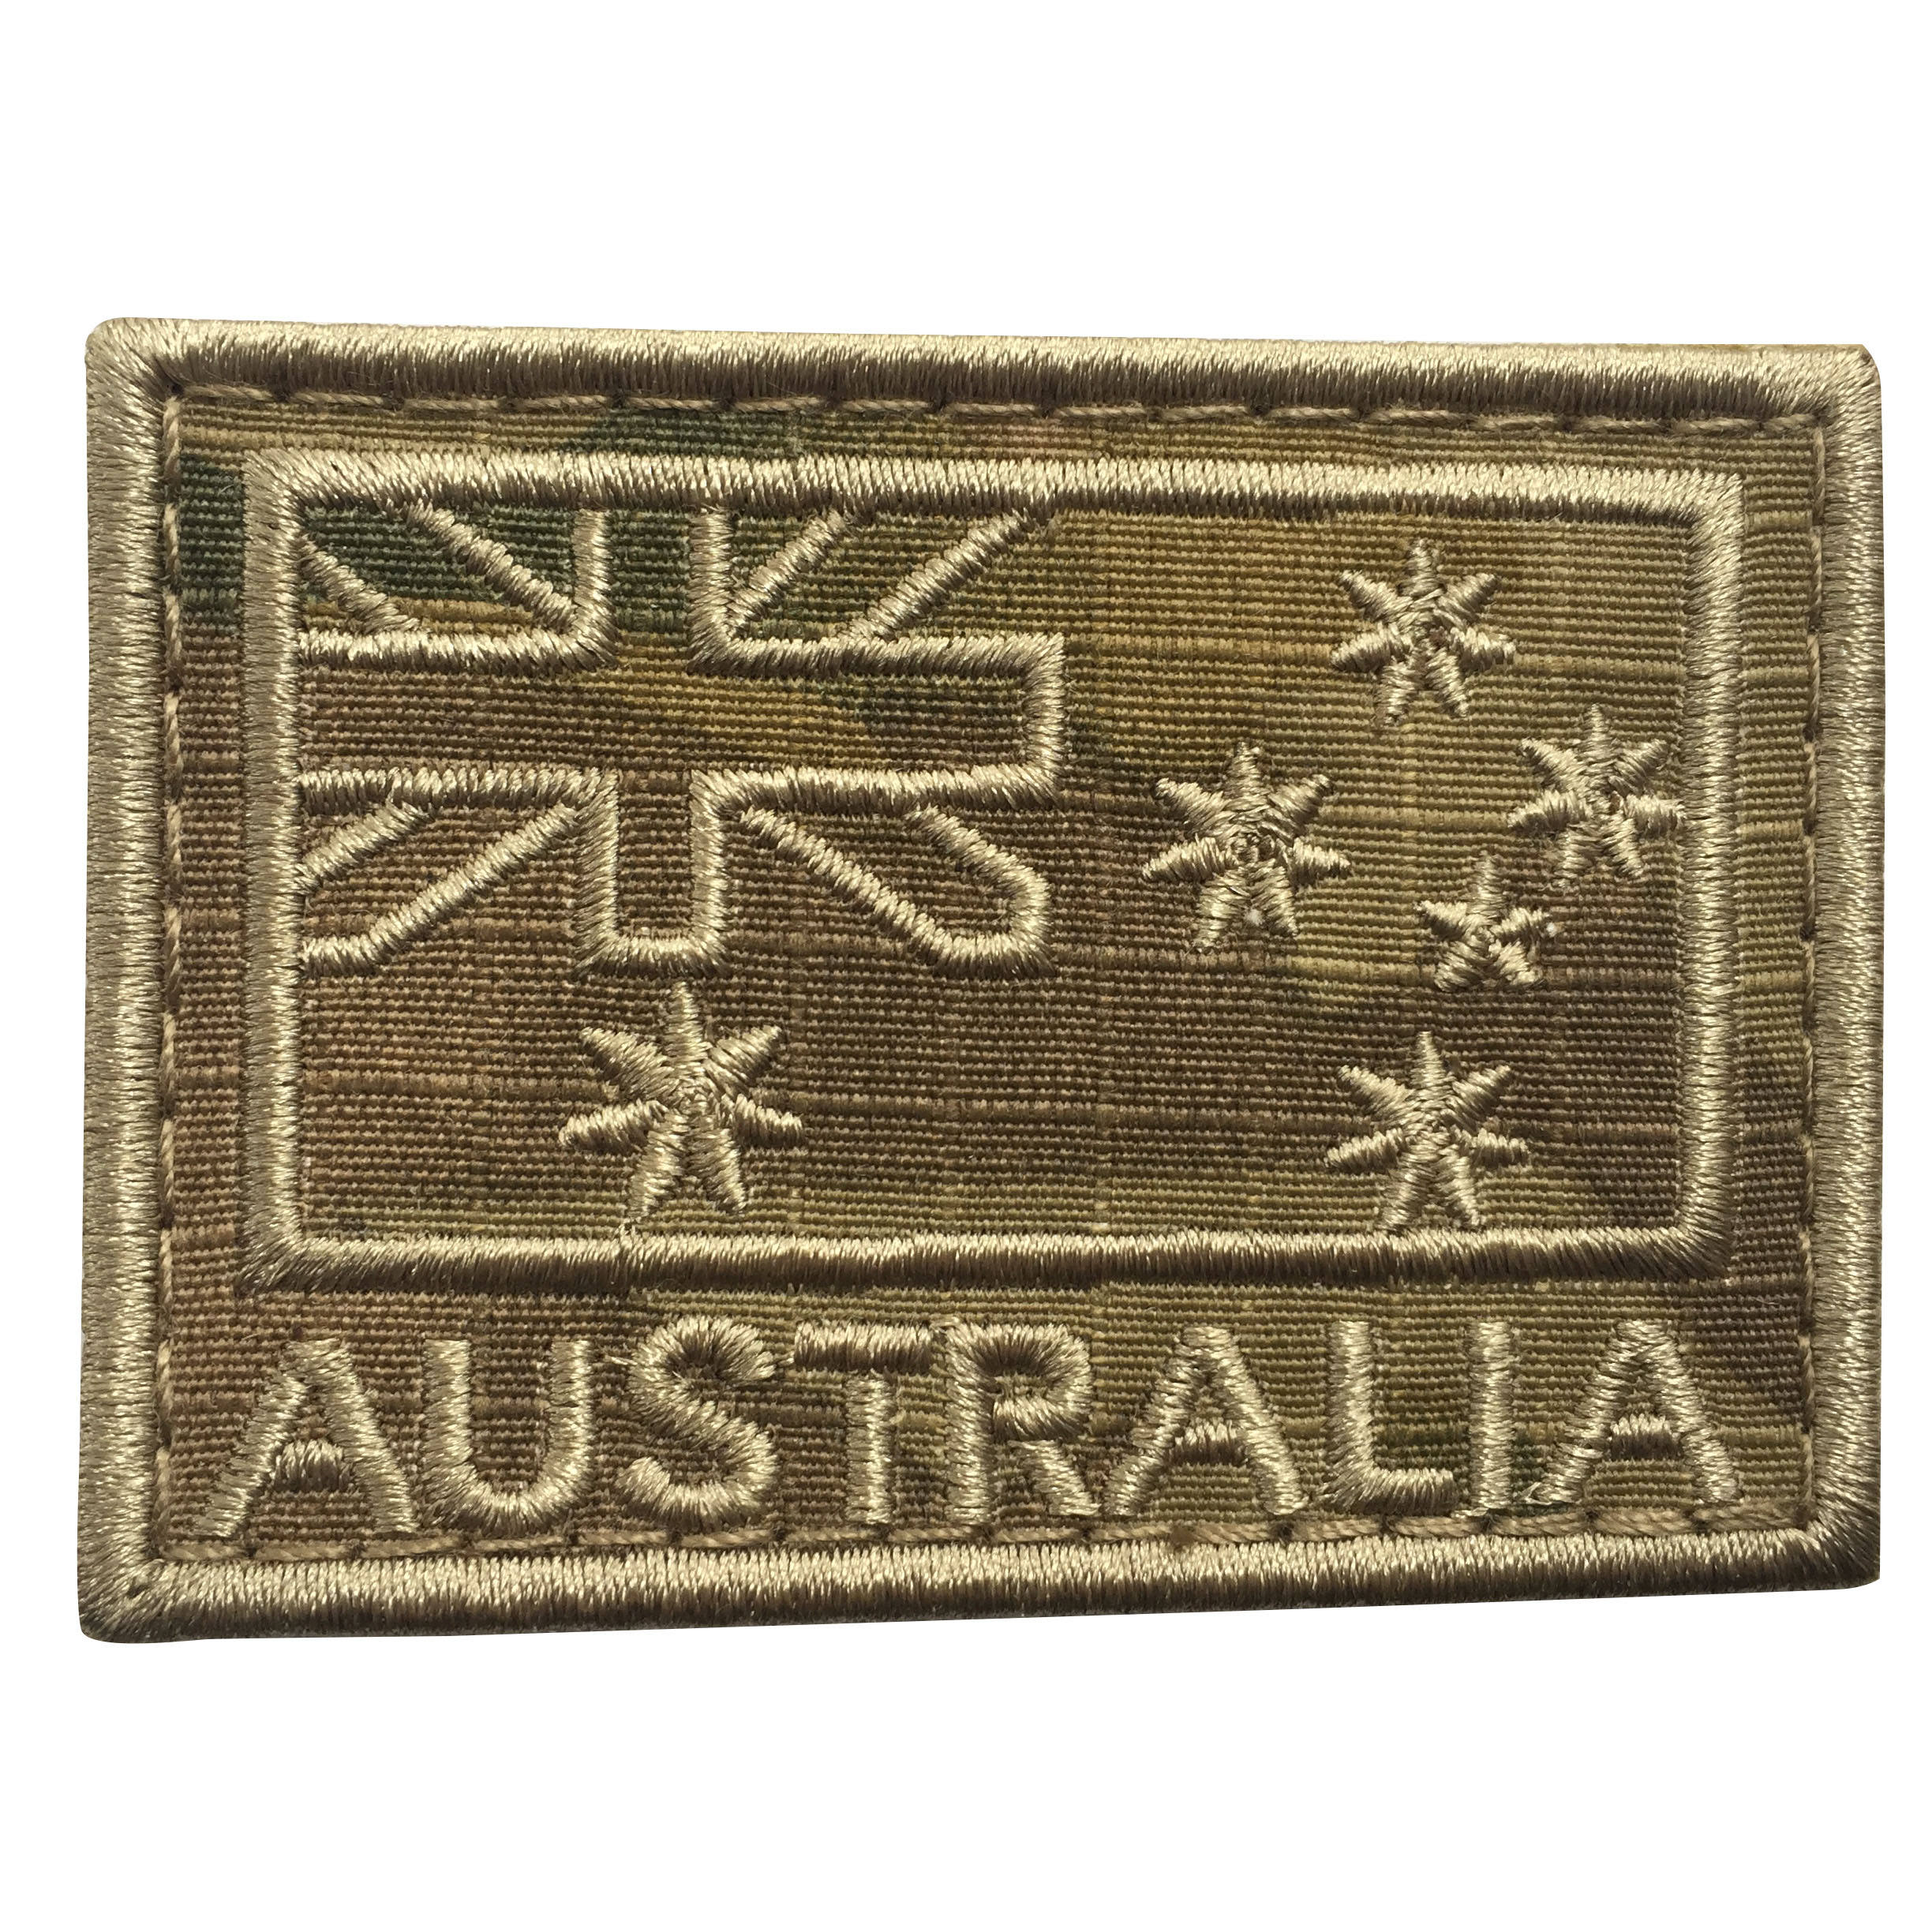 La Bandiera Australiana di Colore 2.95*1.96 Pollici Tactical Us STATI UNITI Bandiera PVC Hook e Loop Uniforme Patch Sub Dued bandiera patch